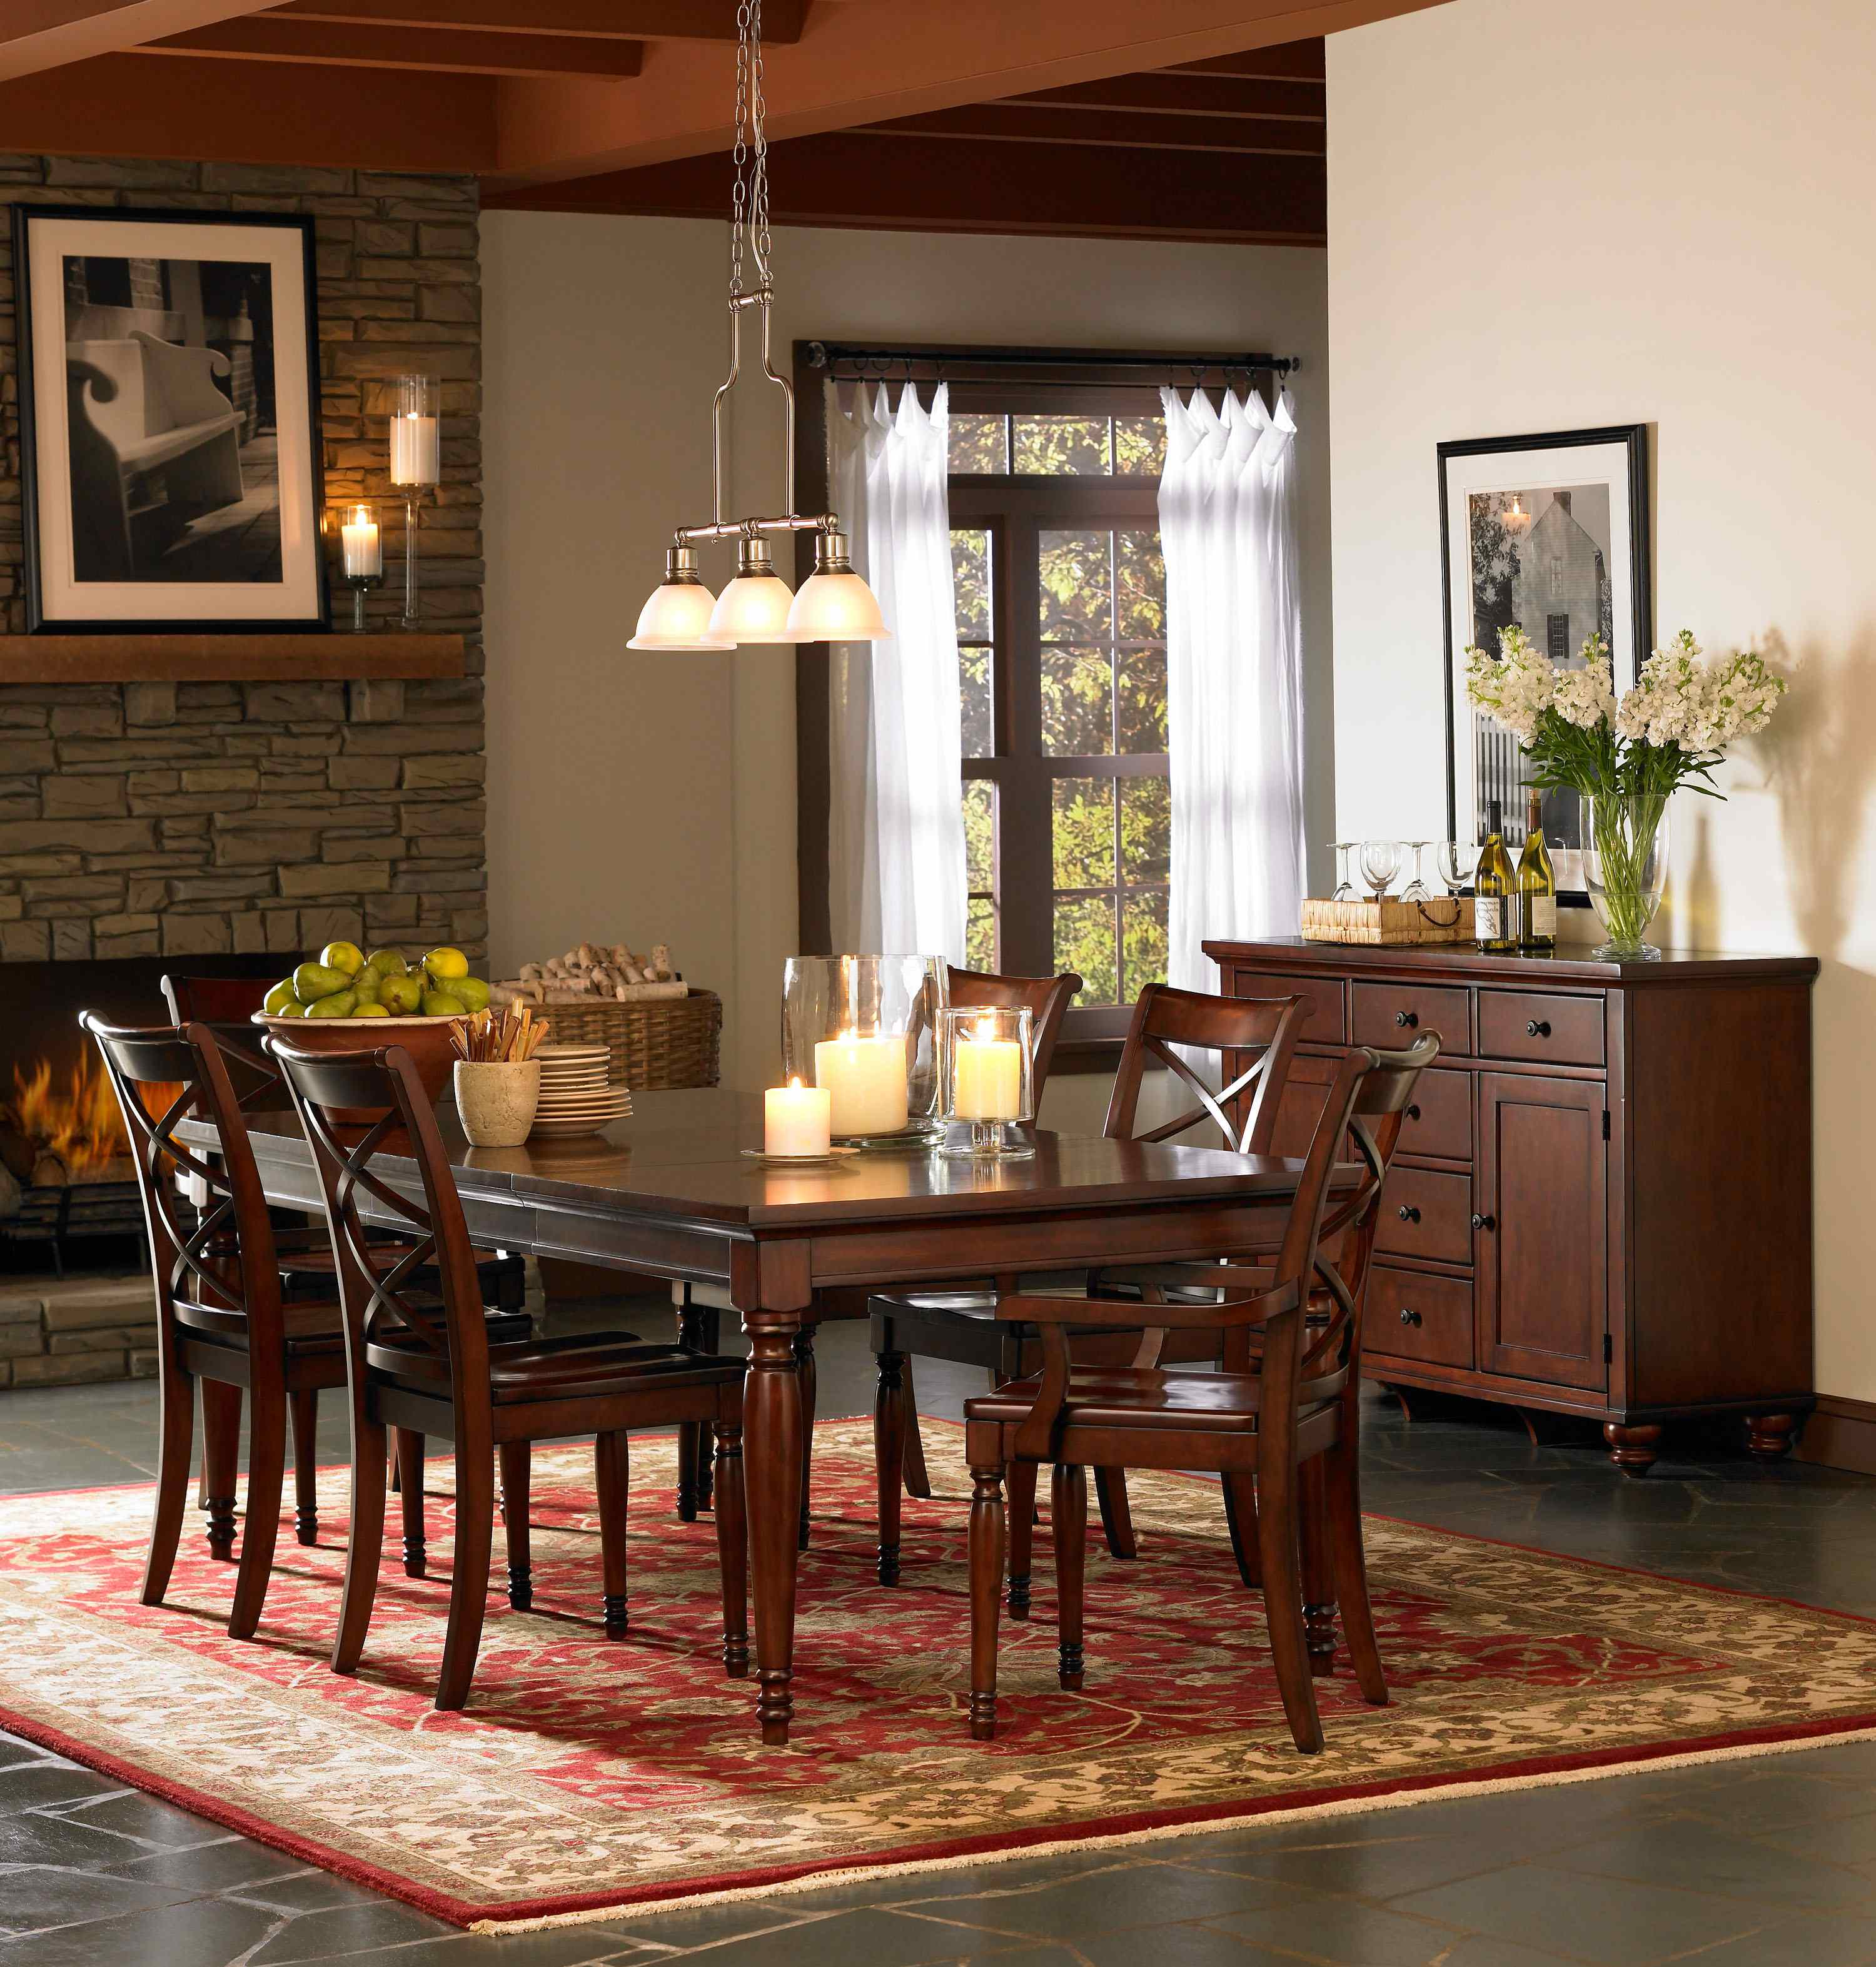 Aspenhome Cambridge 7pc Formal Dining Room Set in Brown